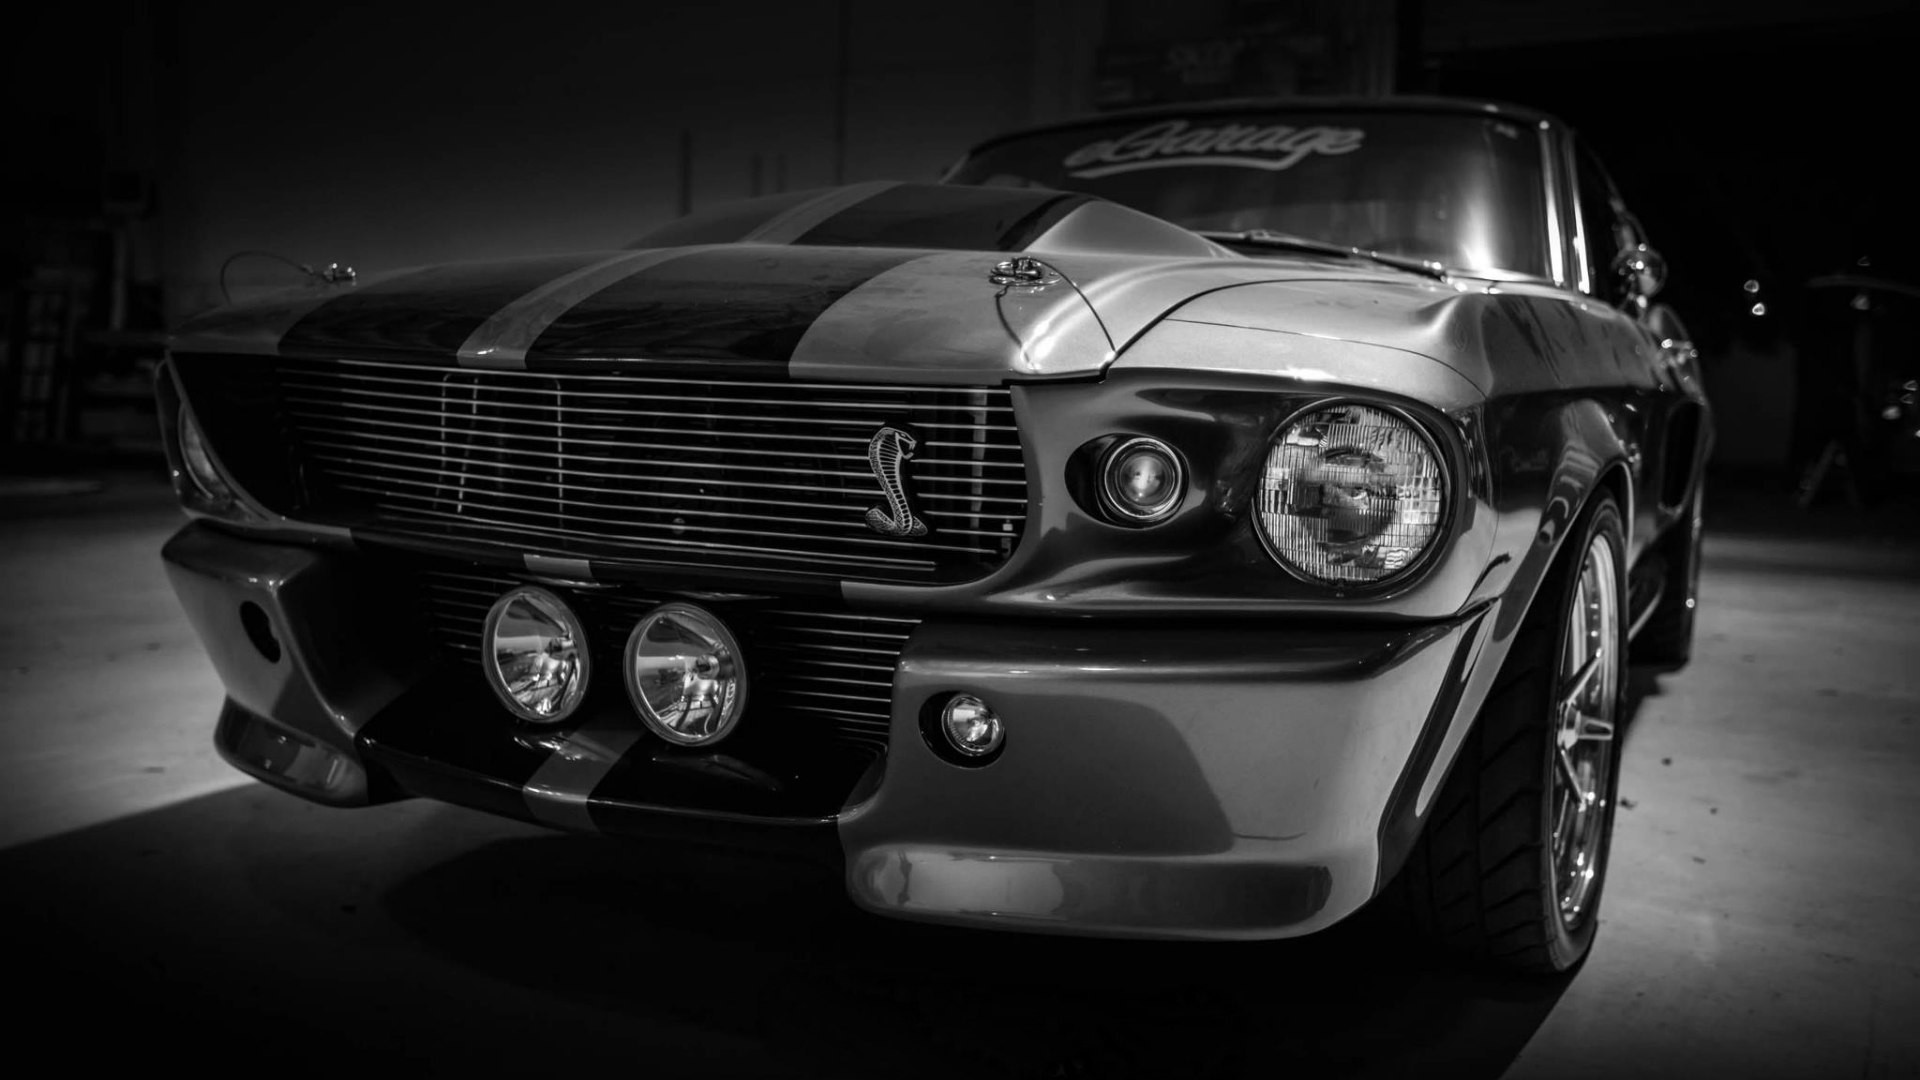 Res: 1920x1080, Ford Mustang Shelby GT500 Wallpaper 18 - 1920 X 1080